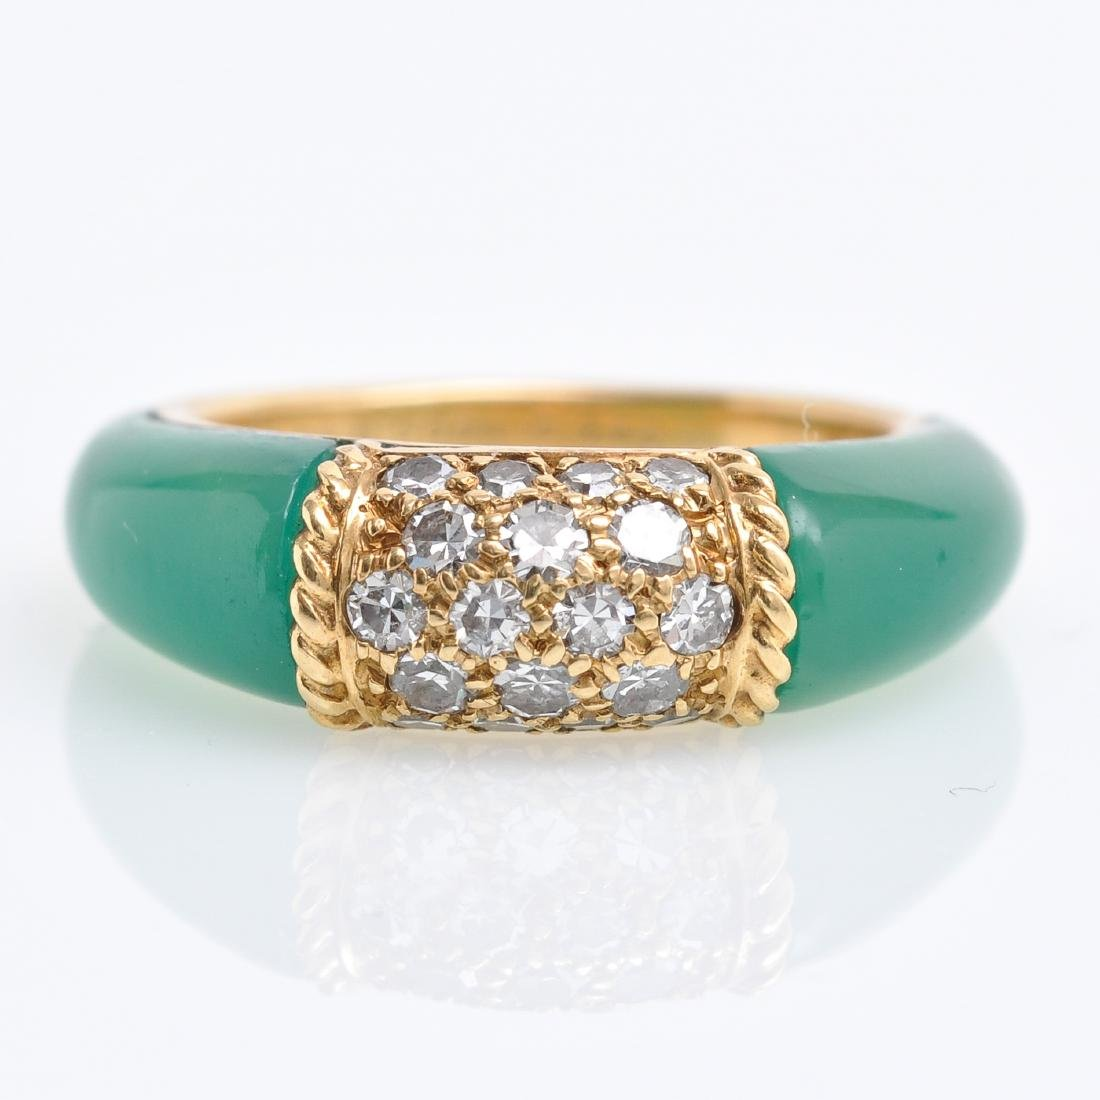 An 18KG Van Cleef & Arpels Chalcedony and Diamond Ring